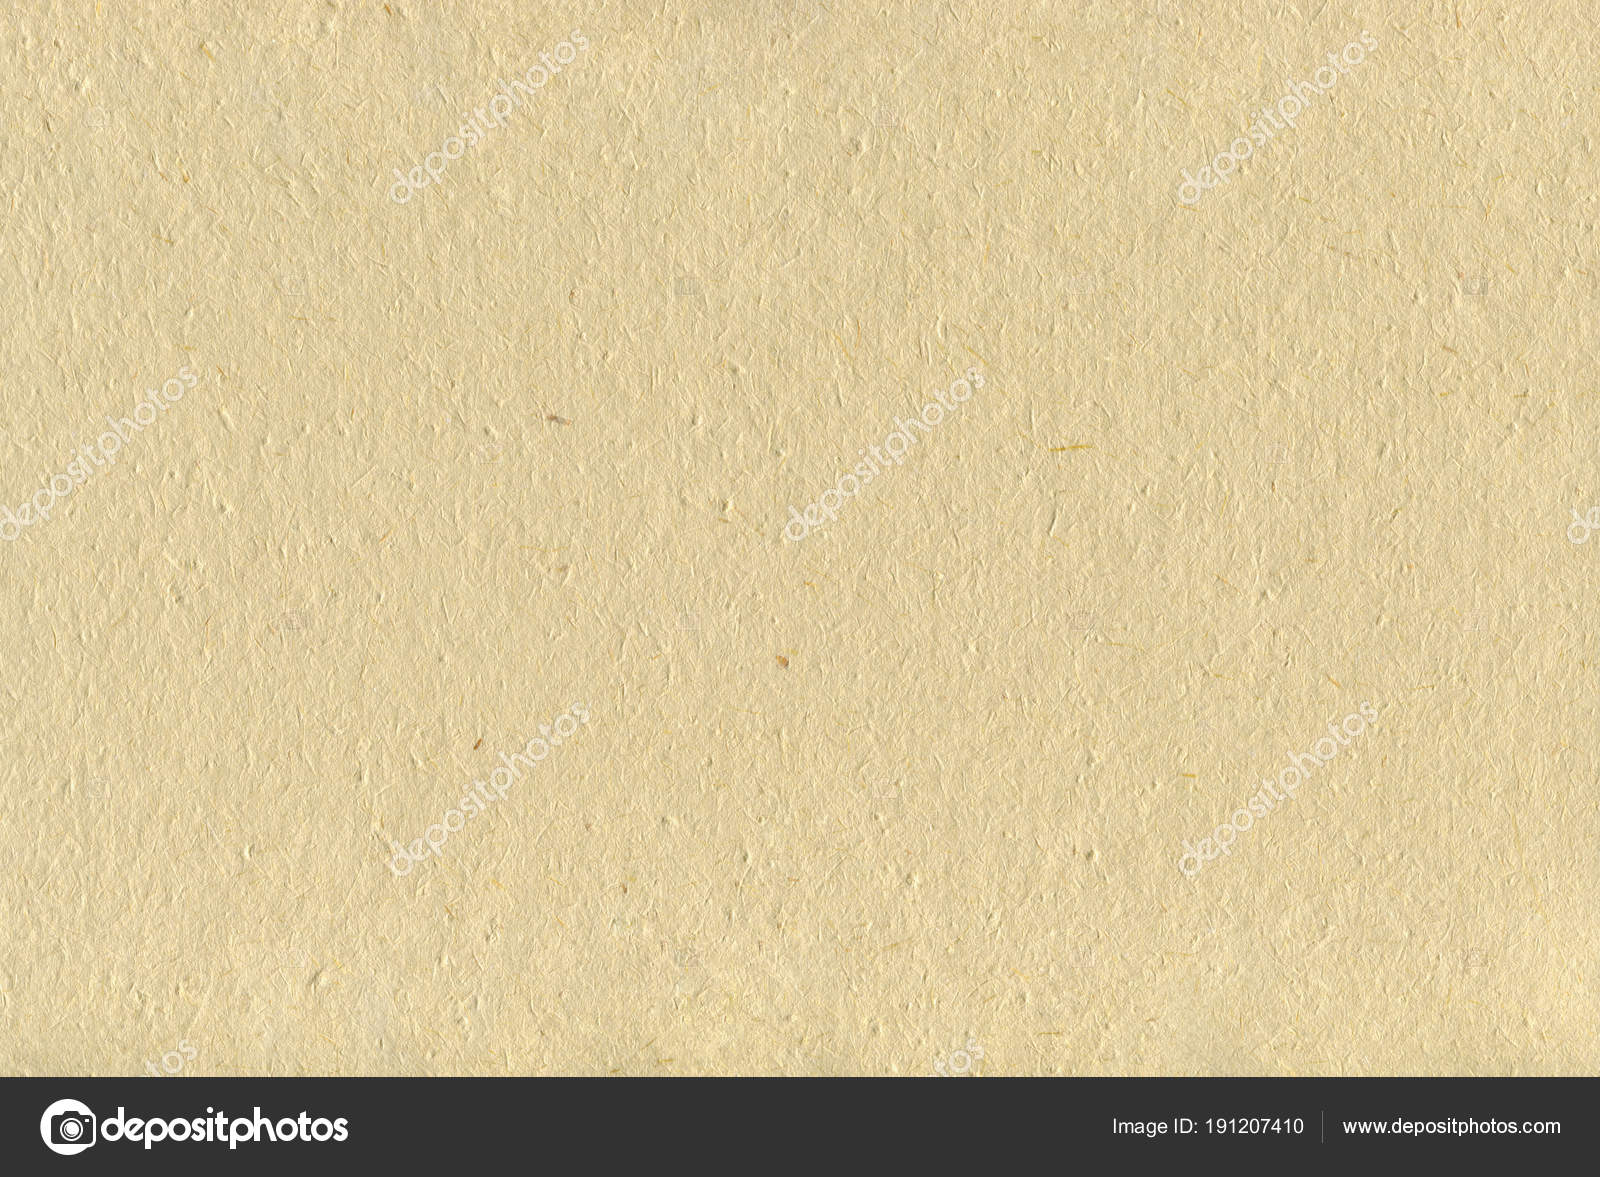 Recycled Beige Tan Art Paper Texture Background, Crumpled Handmade ...